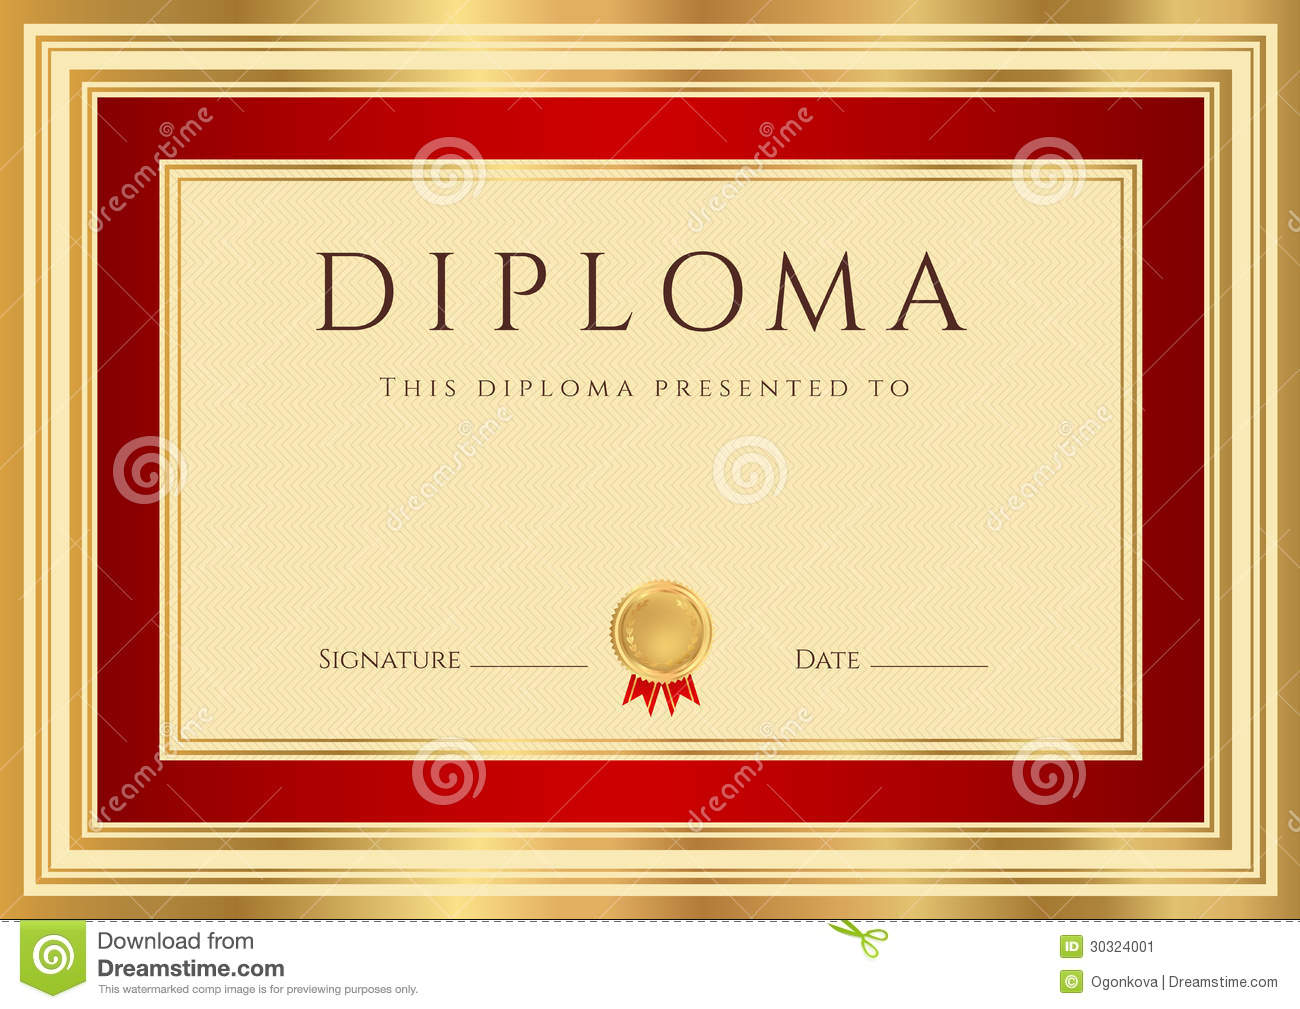 Diploma certificate template with red border stock vector royalty free stock photo download diploma certificate template yelopaper Choice Image